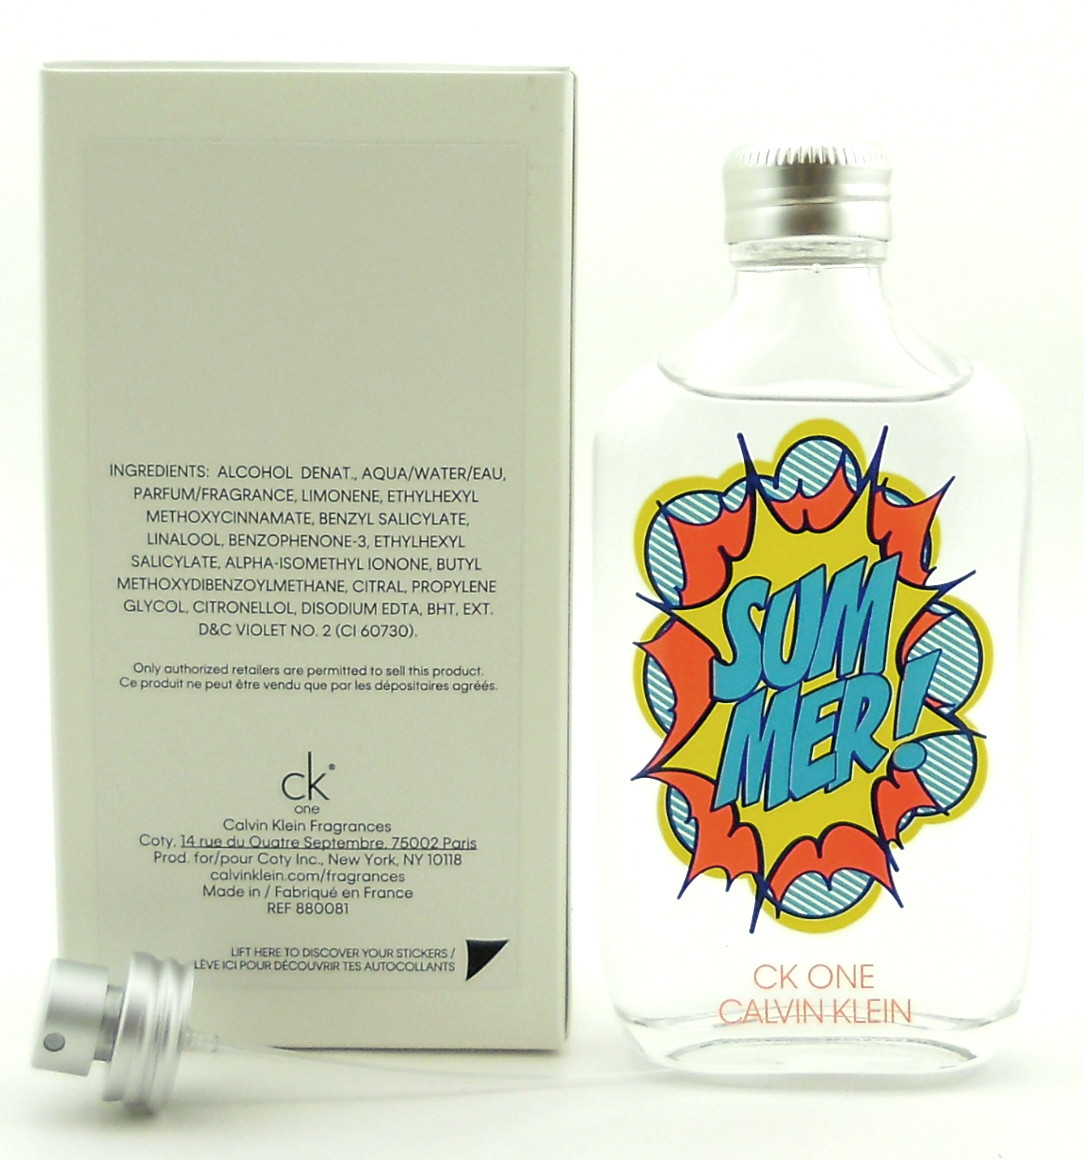 Ck One Summer 2019 Cologne 3 3 oz EDT Spray Limited Edition New in Sealed  Box